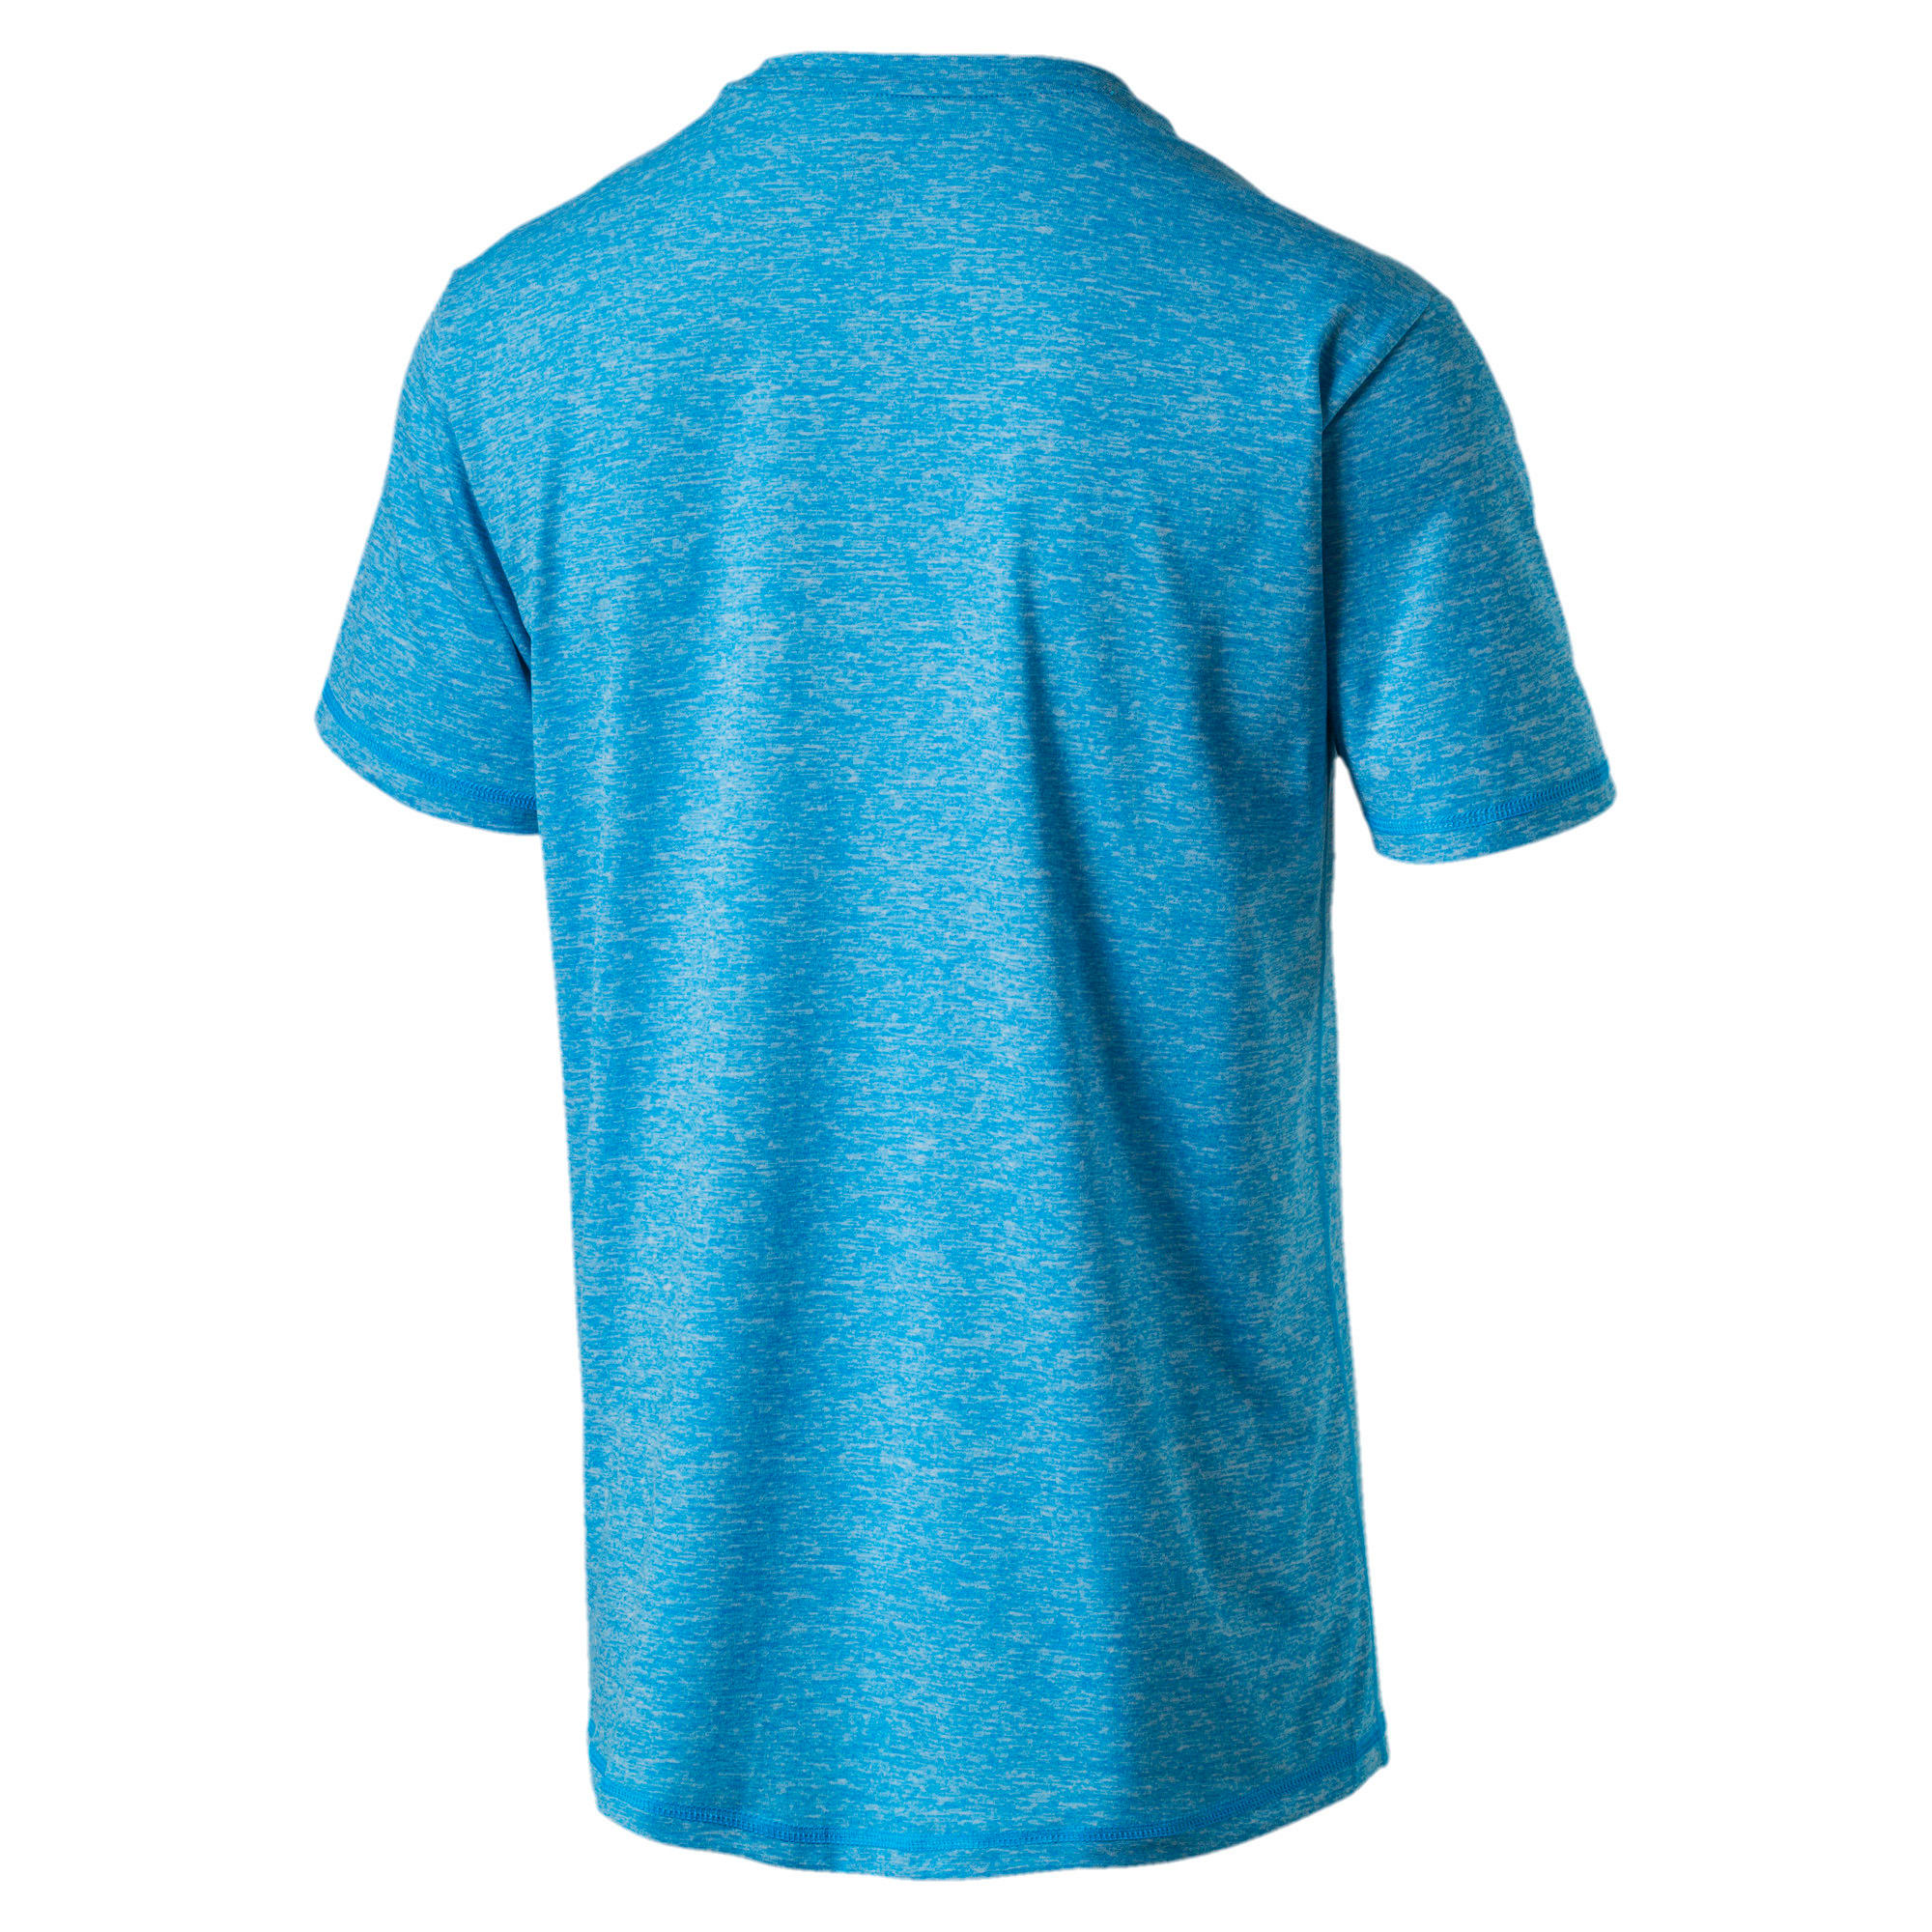 Training Men's Essential Puretech Heather T-Shirt, BLUE DANUBE Heather, large-IND